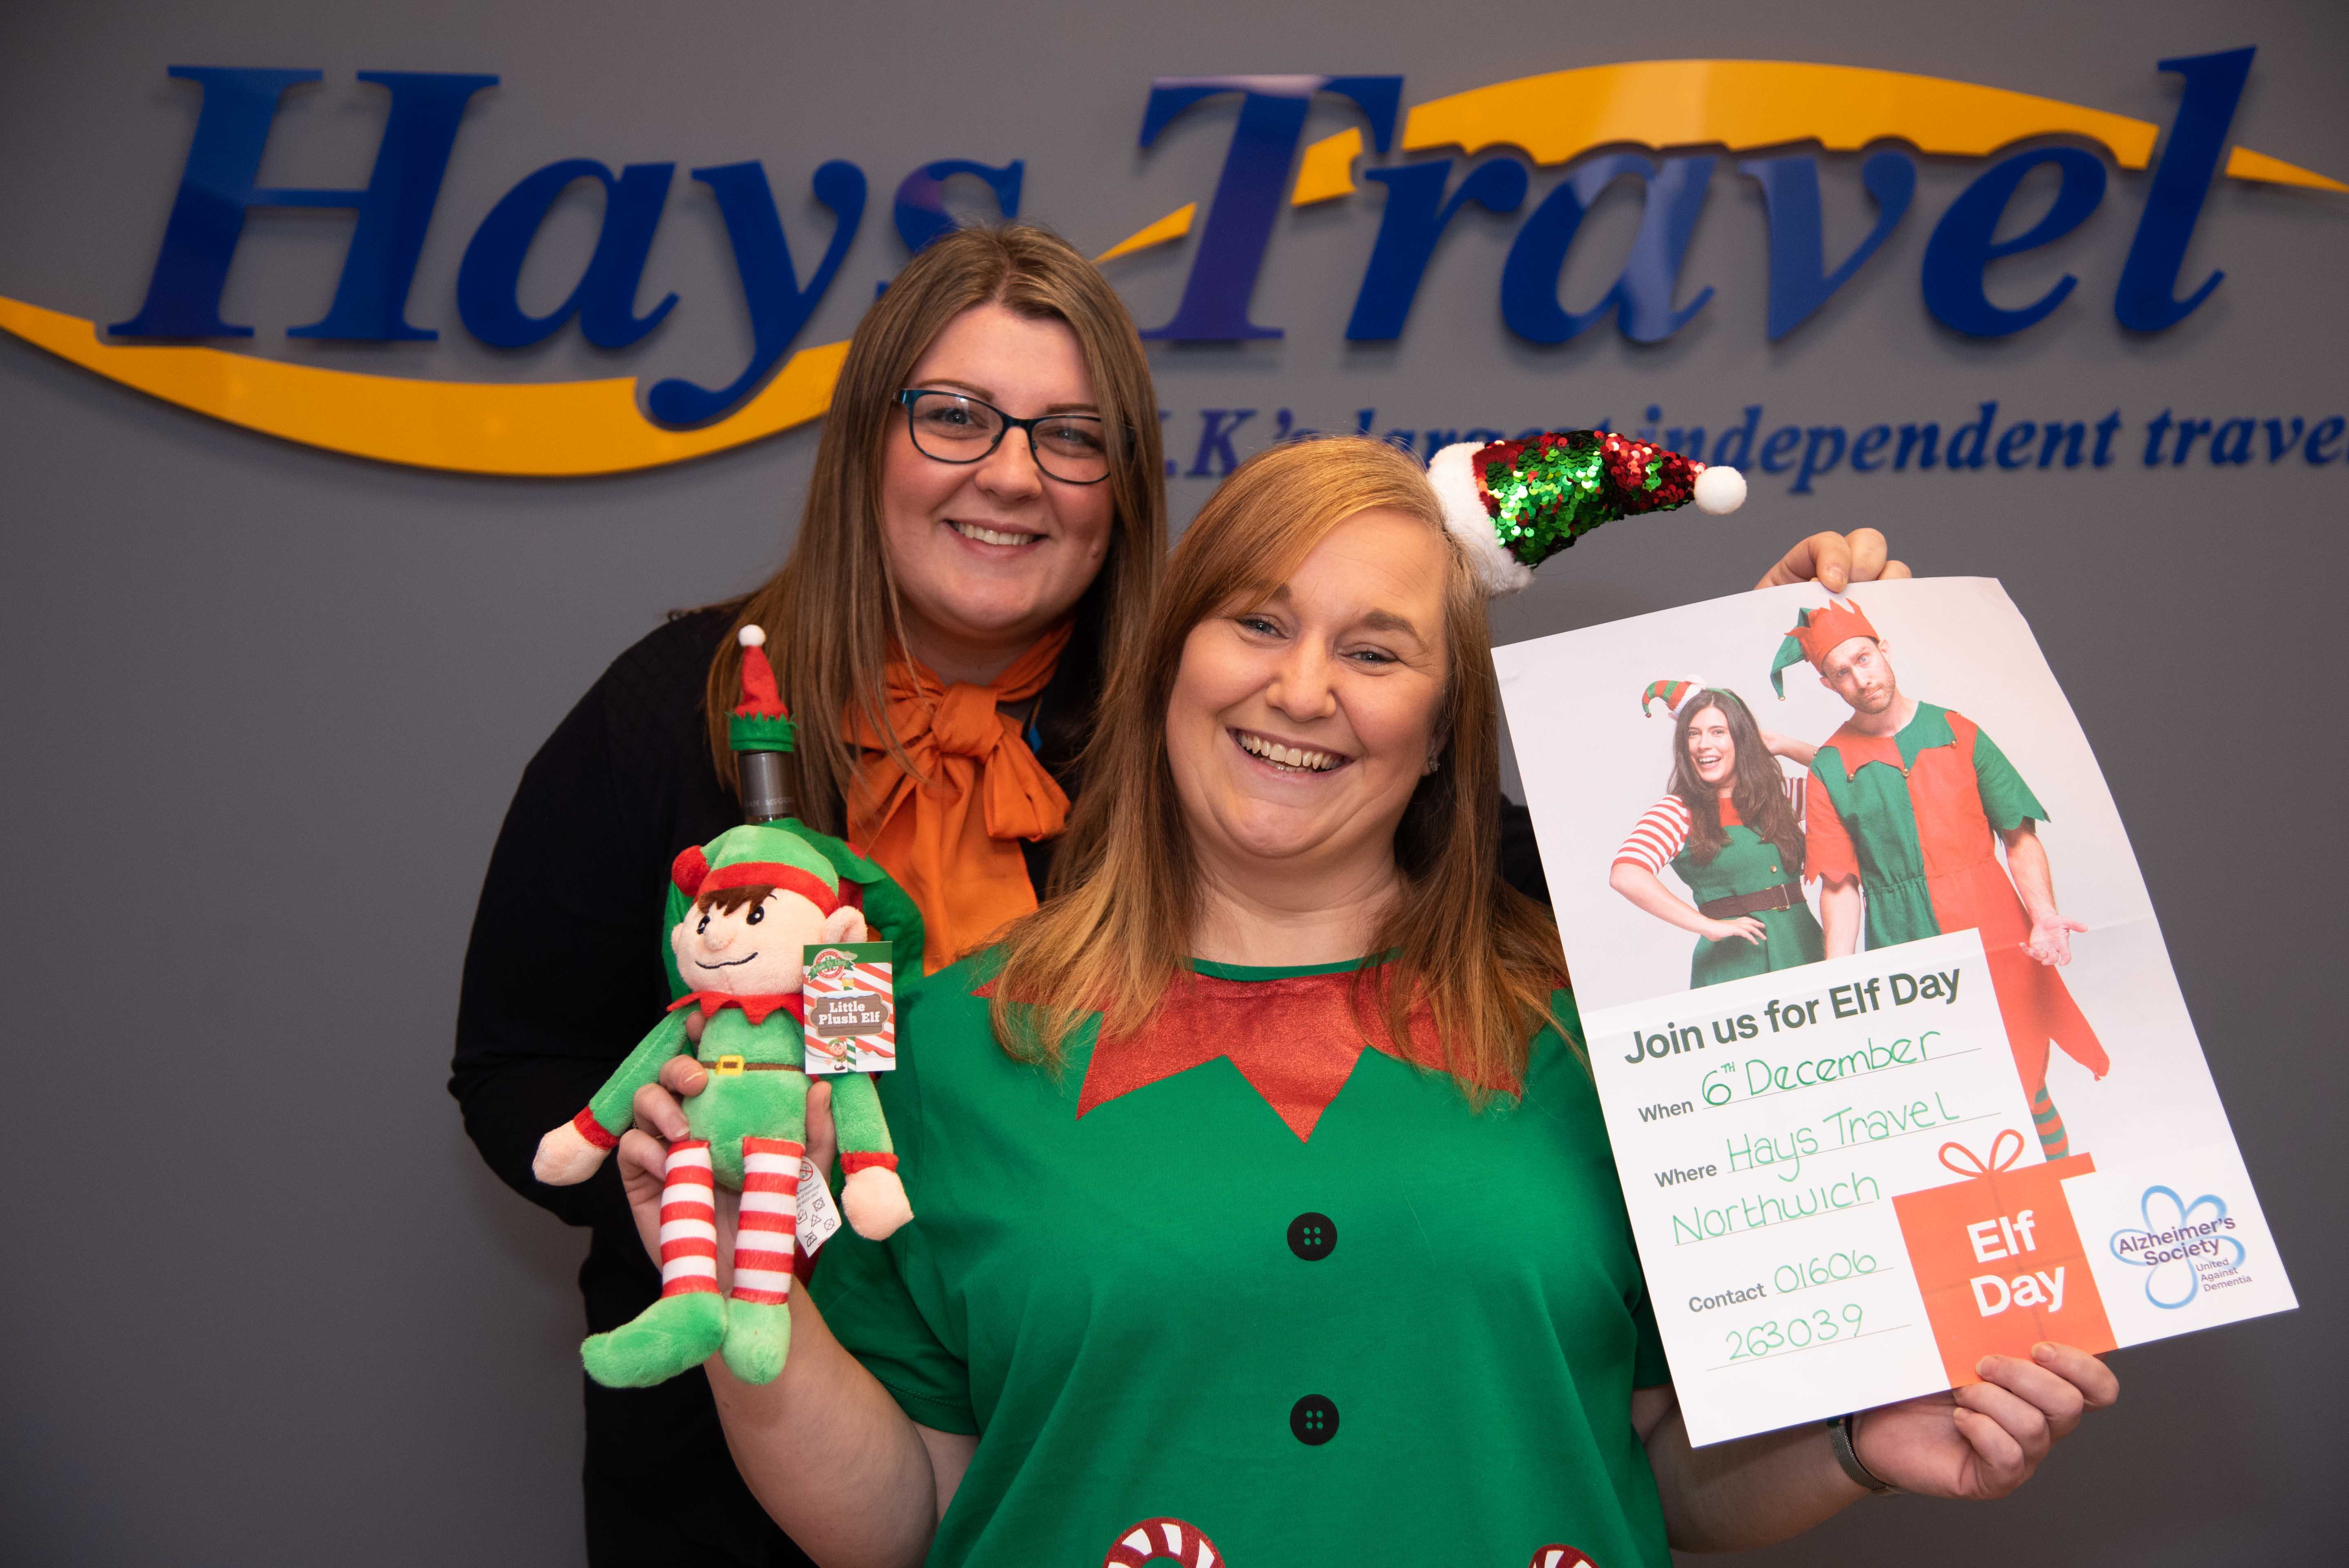 Hays Travel Northwich's manager, Rebekah Gate, and Gemma Dudley, (left).